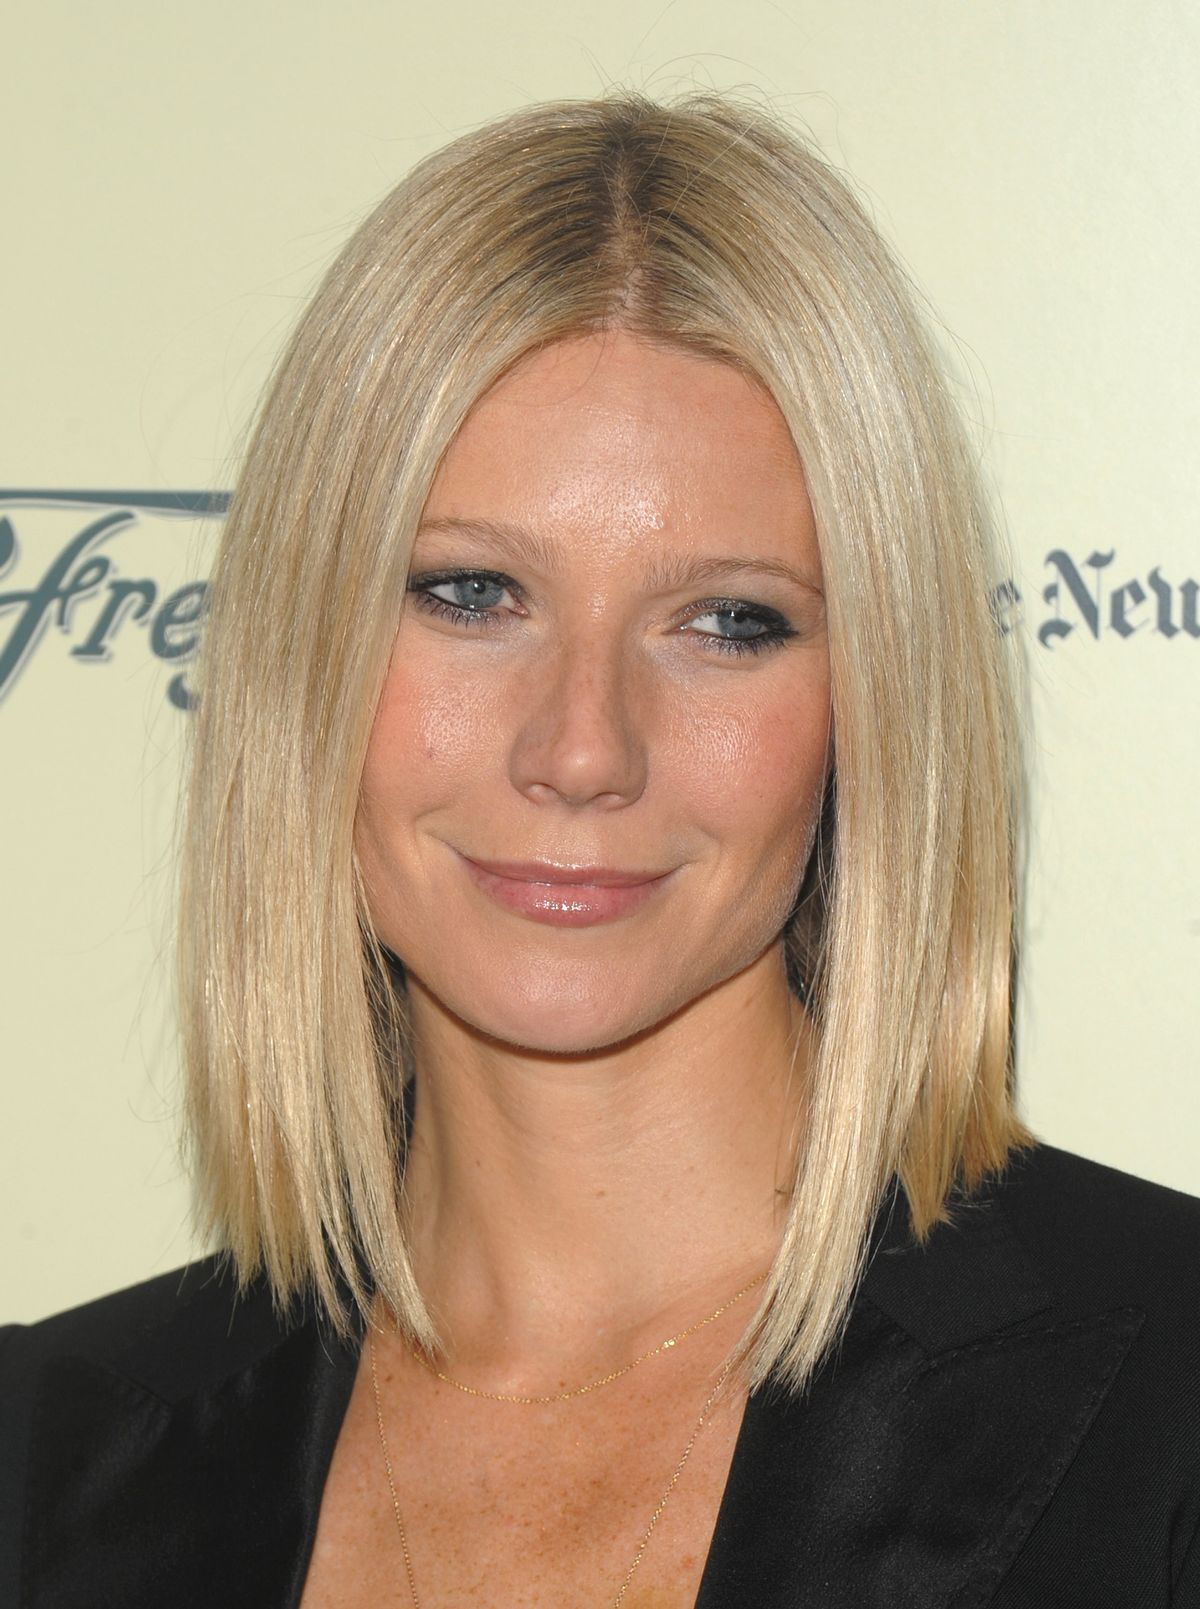 """Actress Gwyneth Paltrow arrives at the launch party for the PBS television series of """"Spain...on the Road Again"""" in New York on Sunday, Sept. 21, 2008. (AP Photo/Peter Kramer) ORG XMIT: NYPK103     (AP)"""